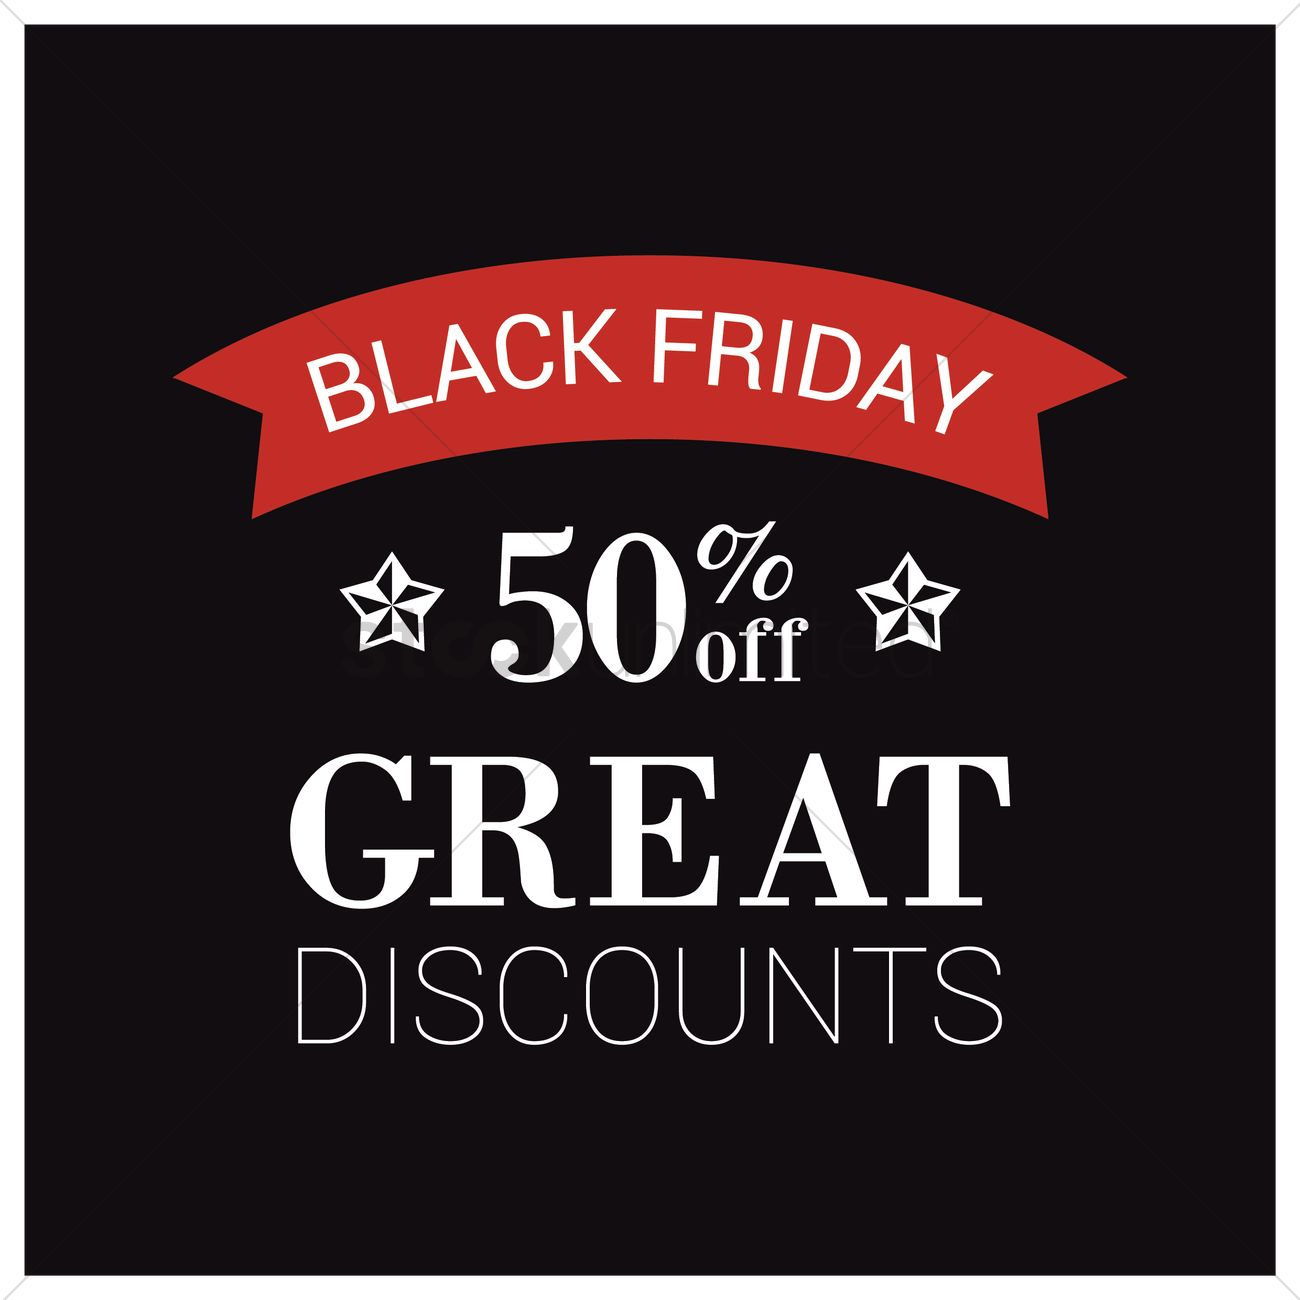 Black friday sale wallpaper Vector Image   1583534 StockUnlimited 1300x1300